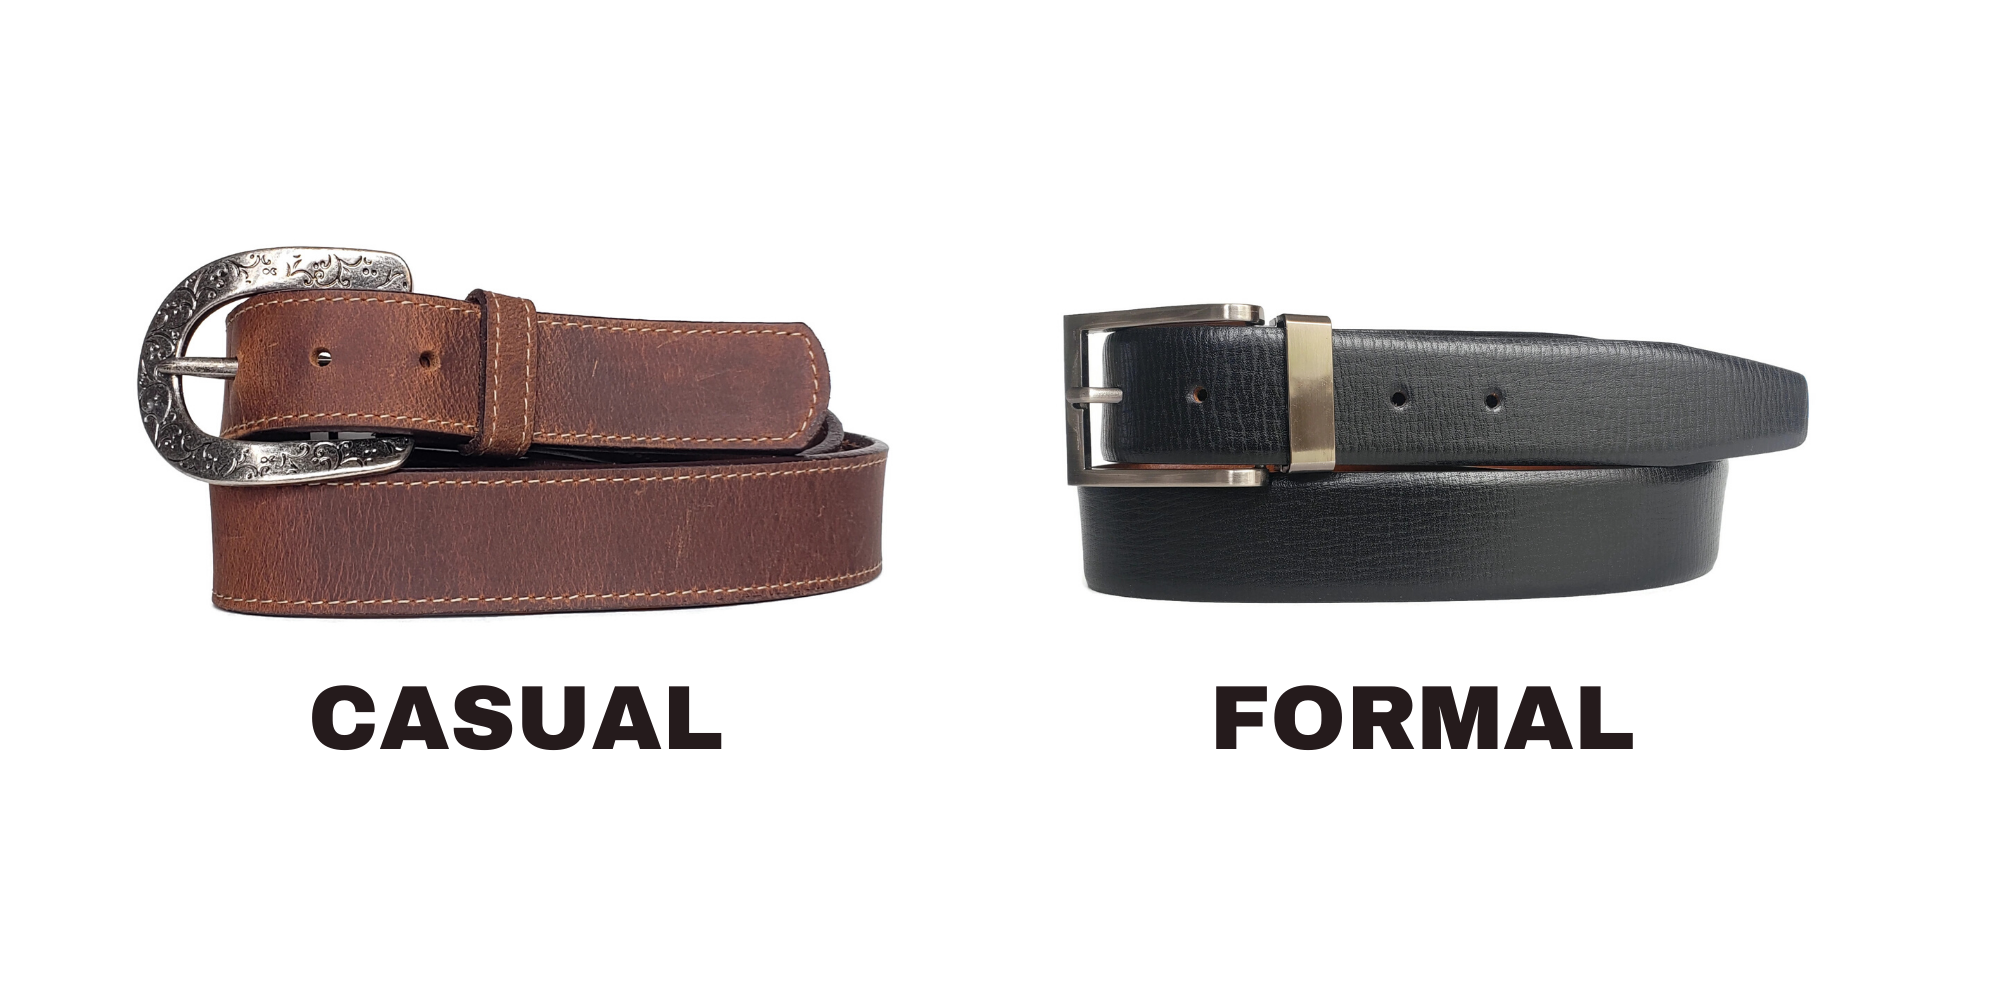 Casual leather belt being compared with formal leather belt.